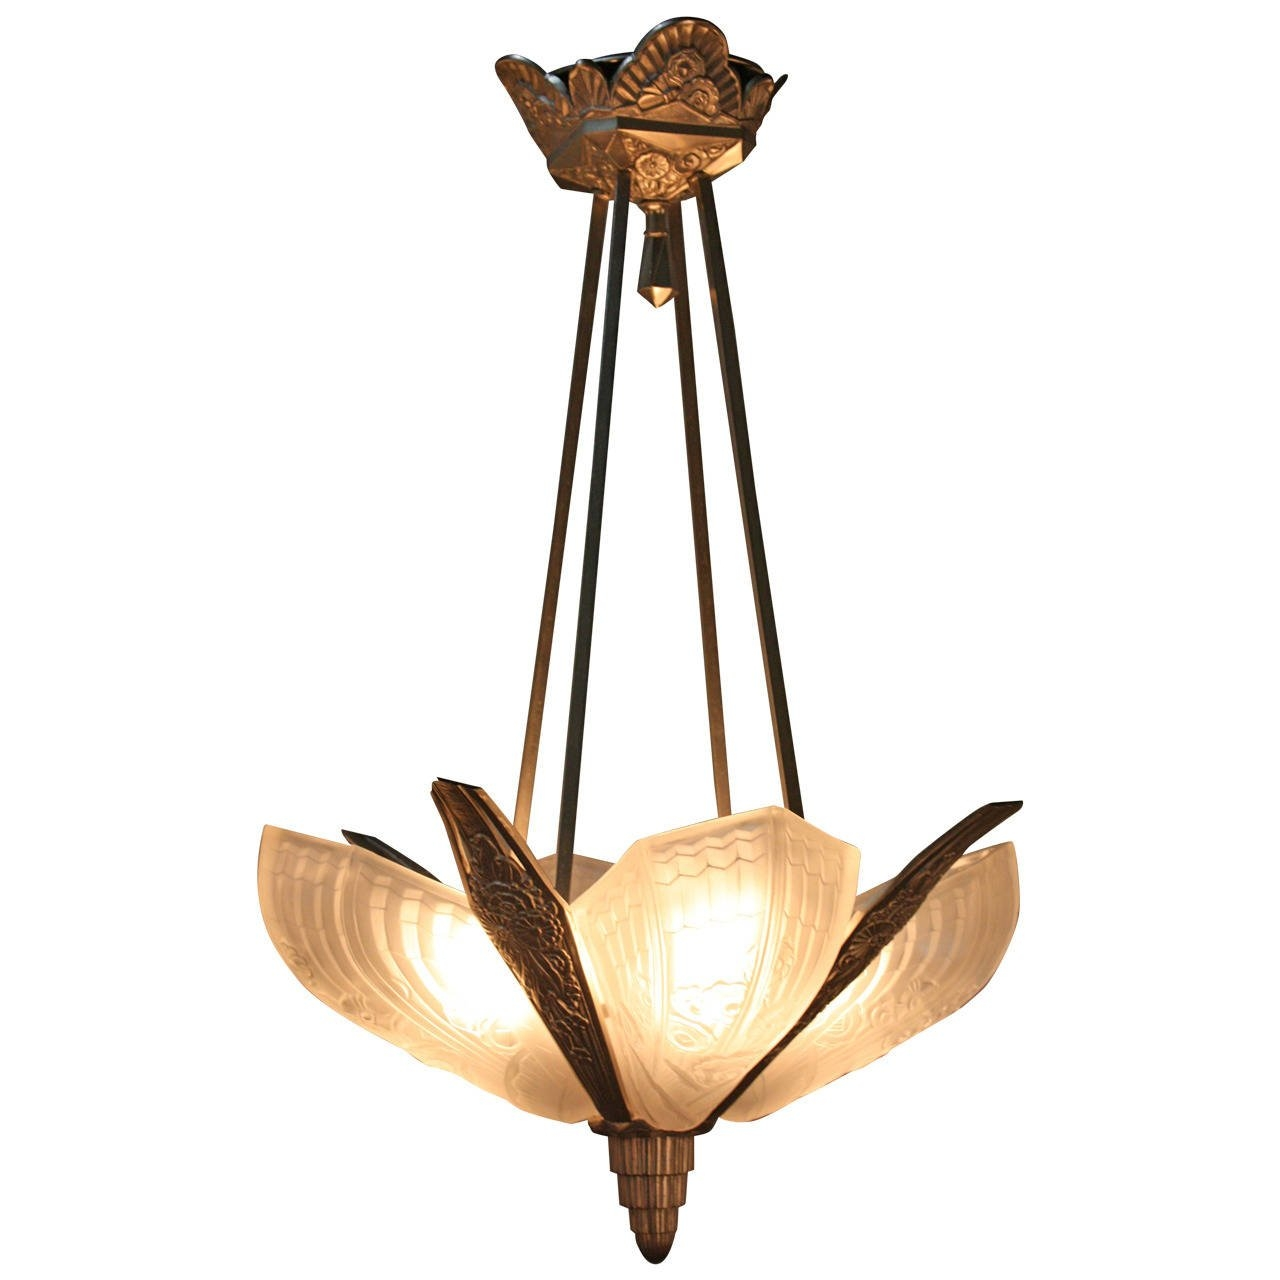 1920s Art Deco Chandelier At 1stdibs In Art Deco Chandelier (Image 1 of 15)